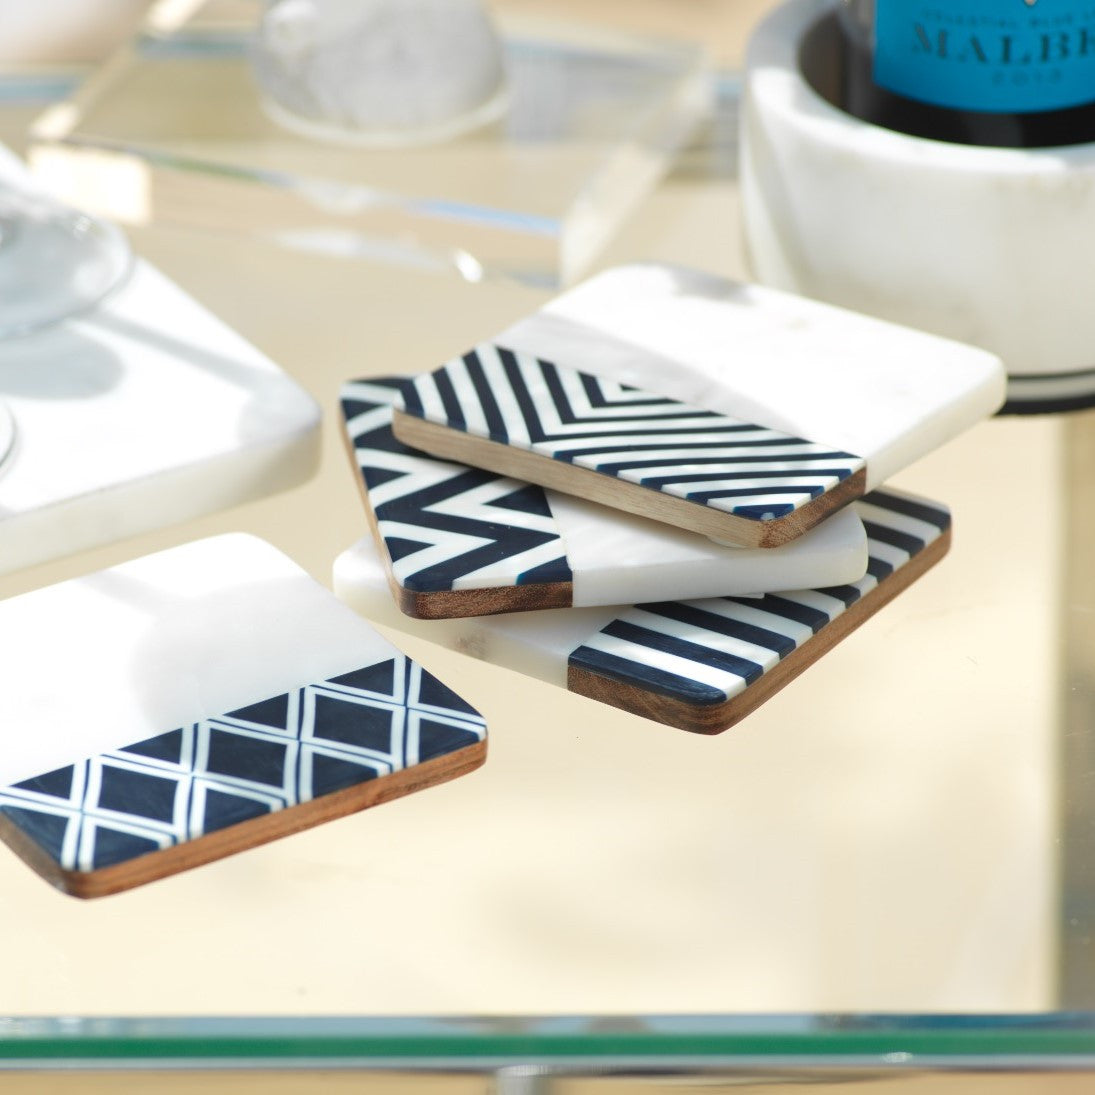 Marine Marble Set/4 Assorted Coasters - CARLYLE AVENUE